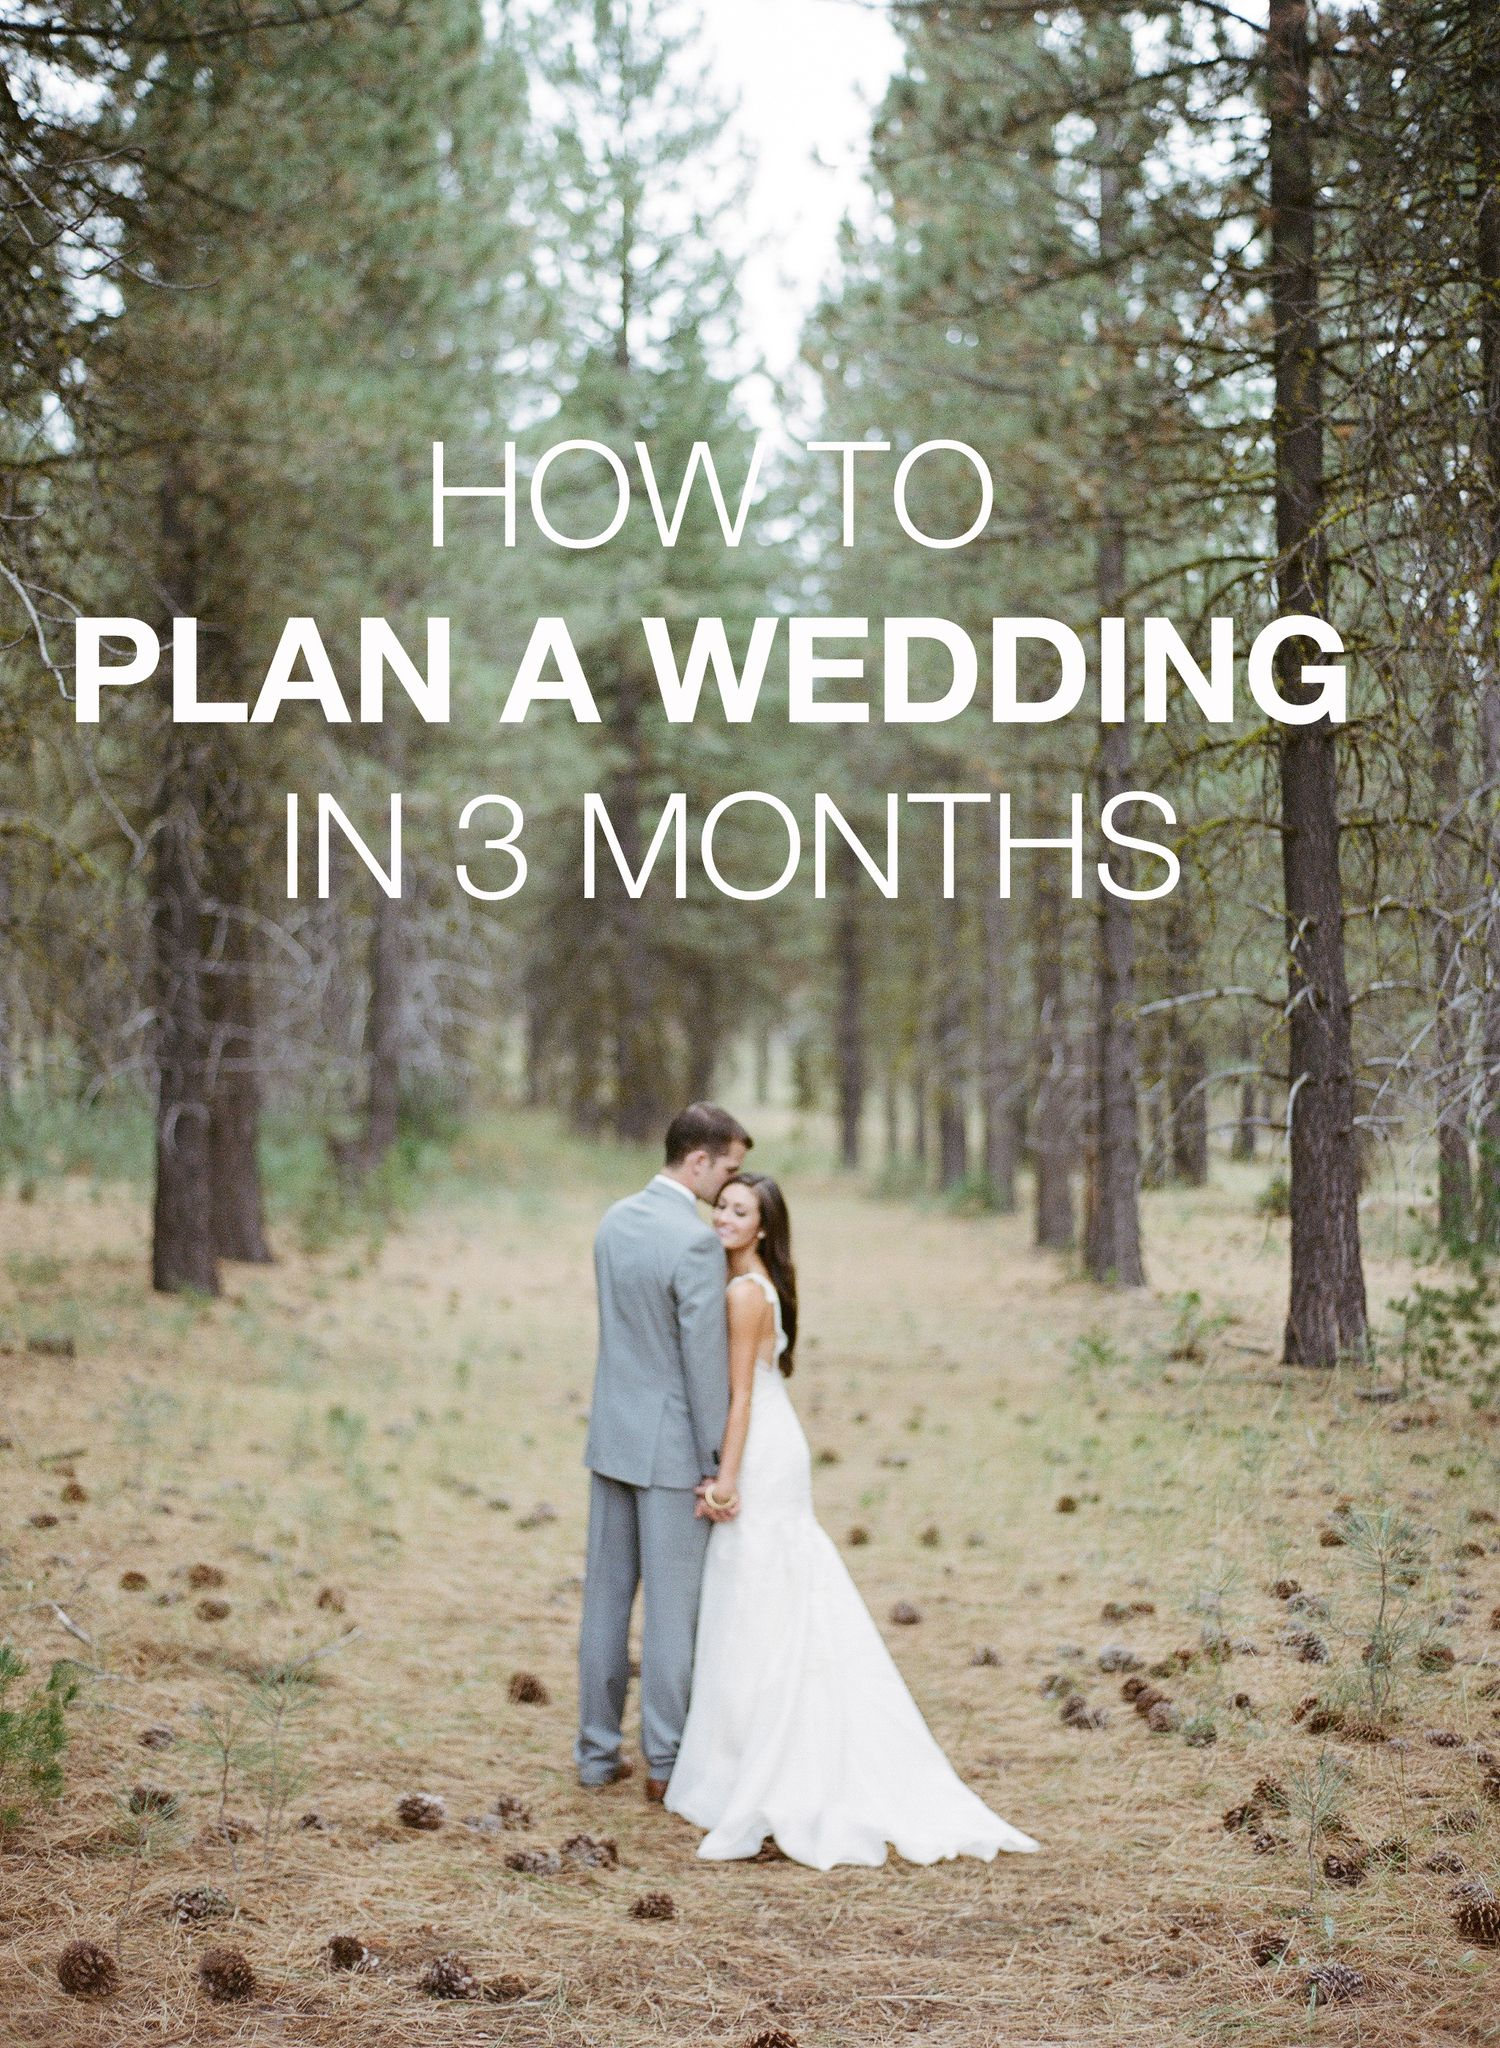 HOW TO PLAN A WEDDING IN 3 MONTHS Weddings Wedding and Wedding